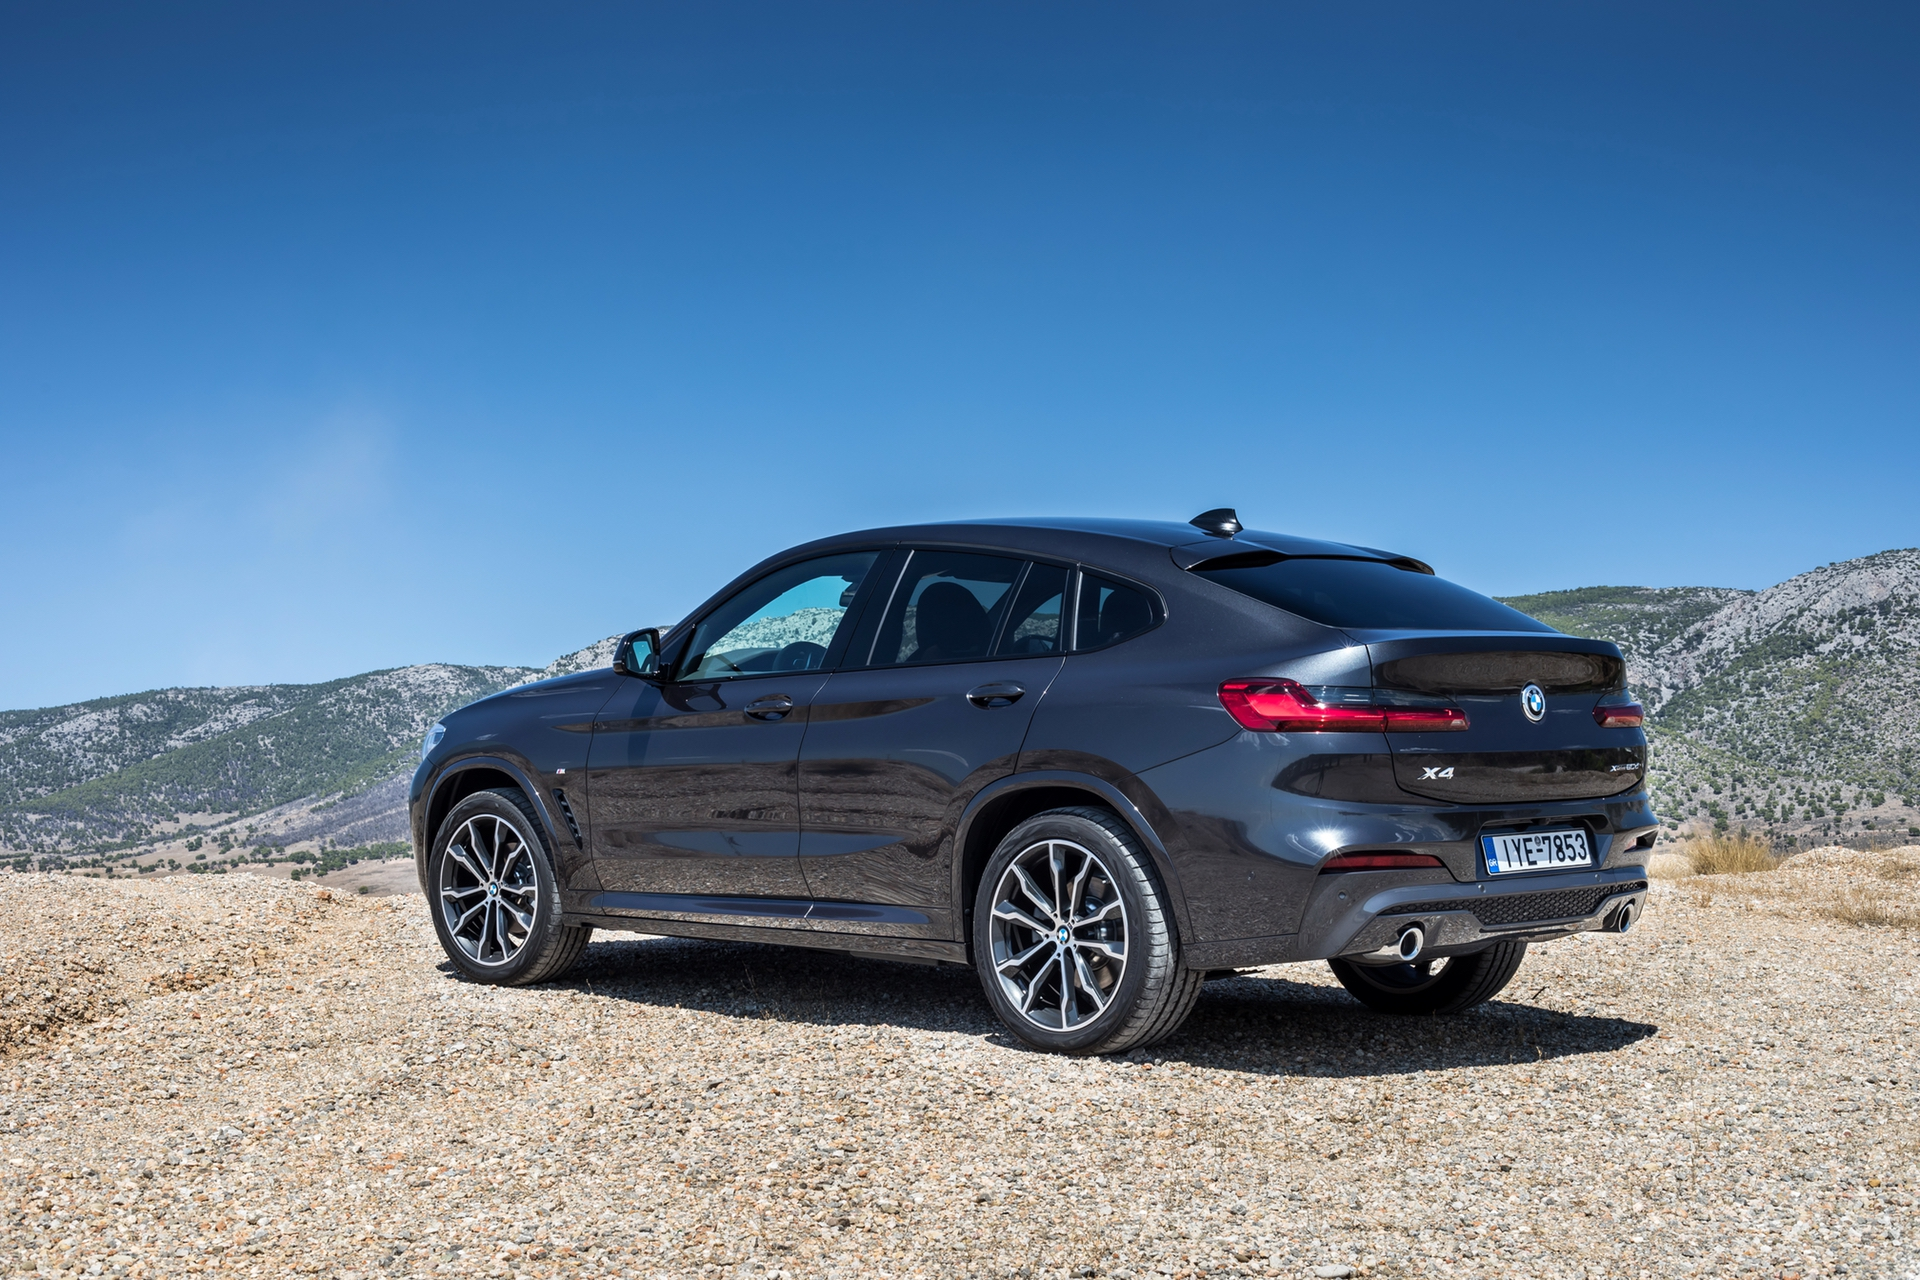 BMW_X4_greek_presskit_0056